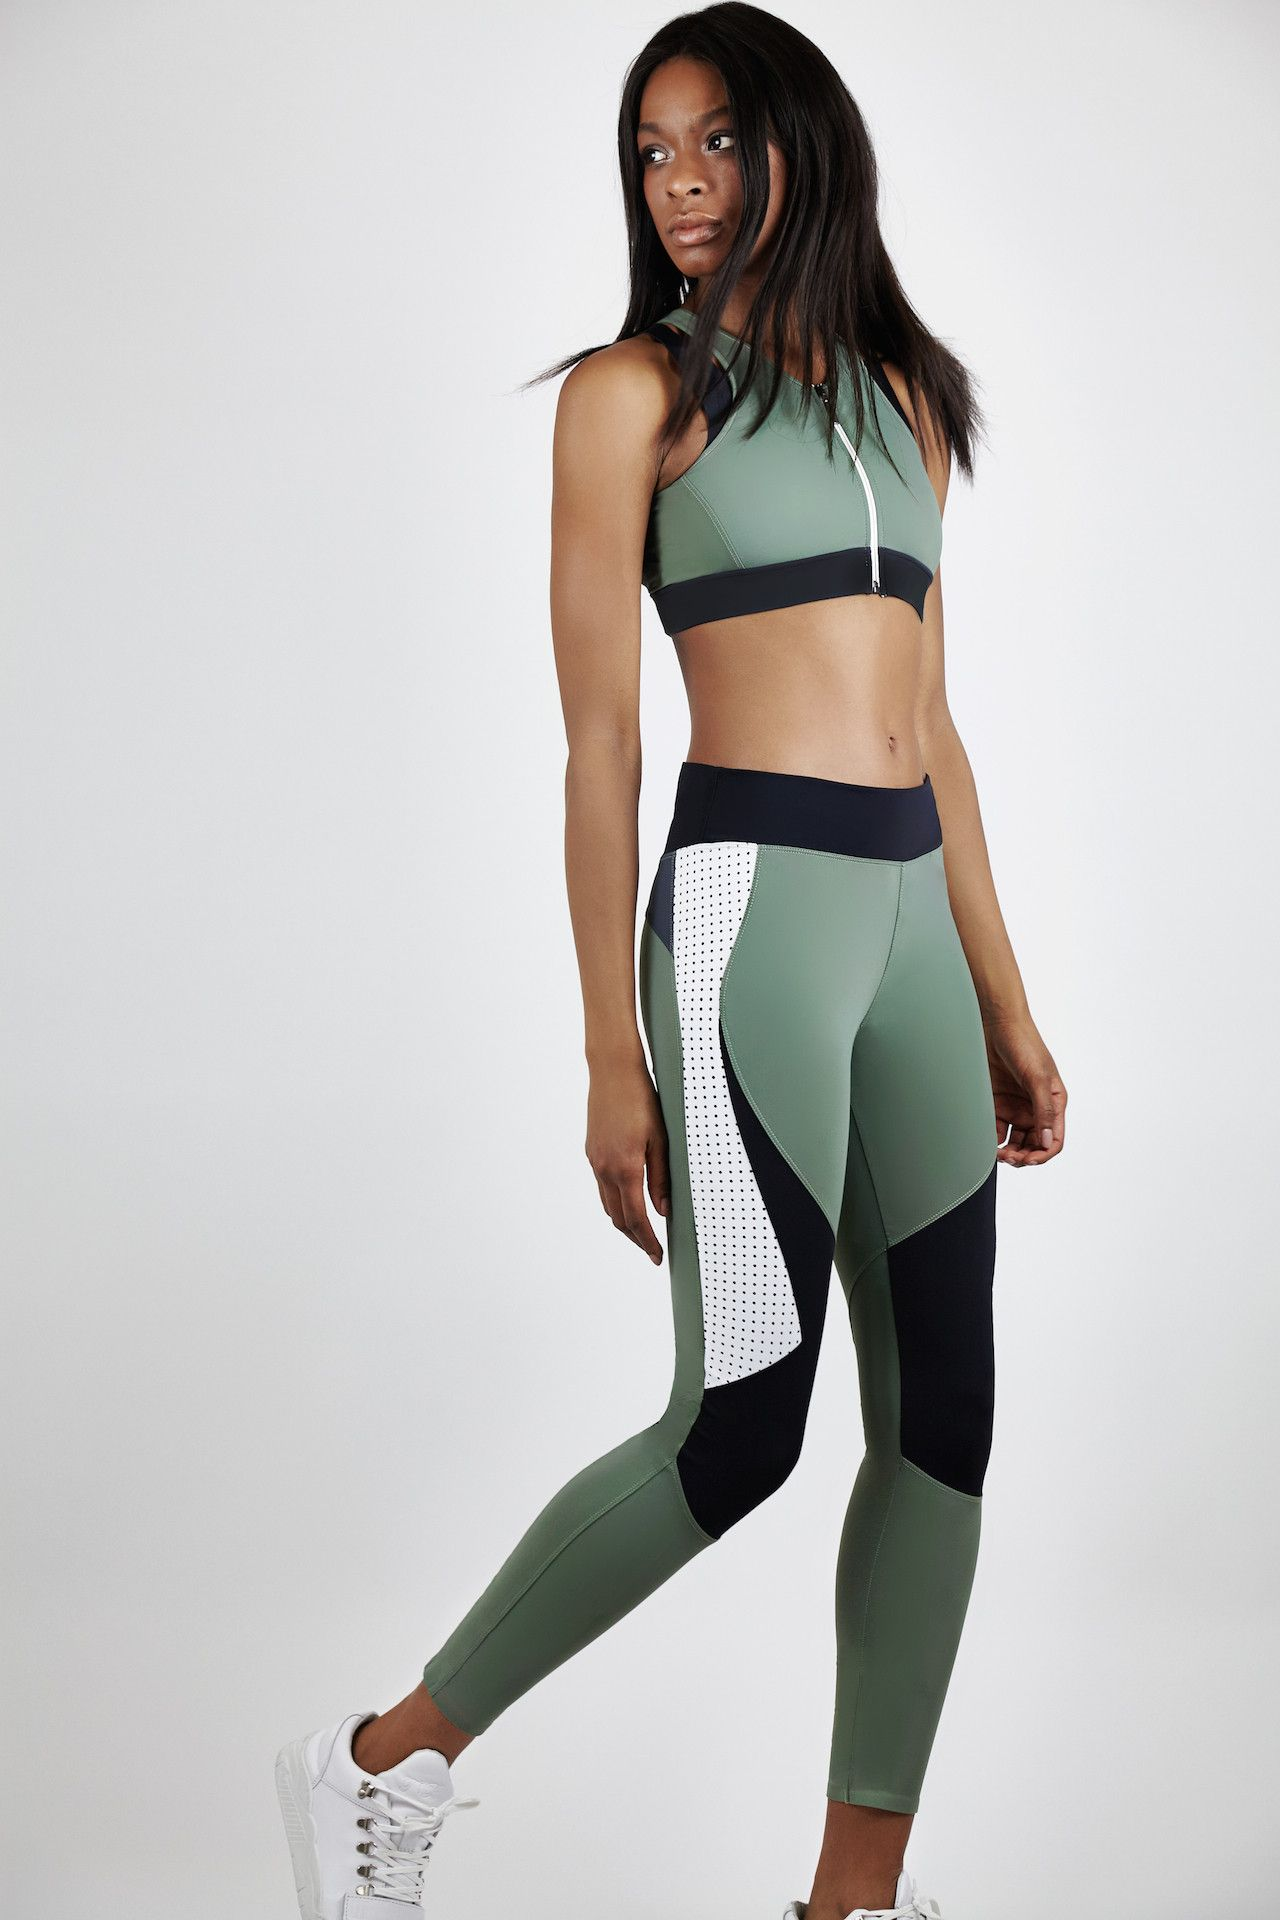 Tap For Incredible Fitness Leggings Yoga And Gym Items At The Incredible Shire Fire Super Sales At 40 Off Or Sport Outfits Sports Leggings Fitness Fashion